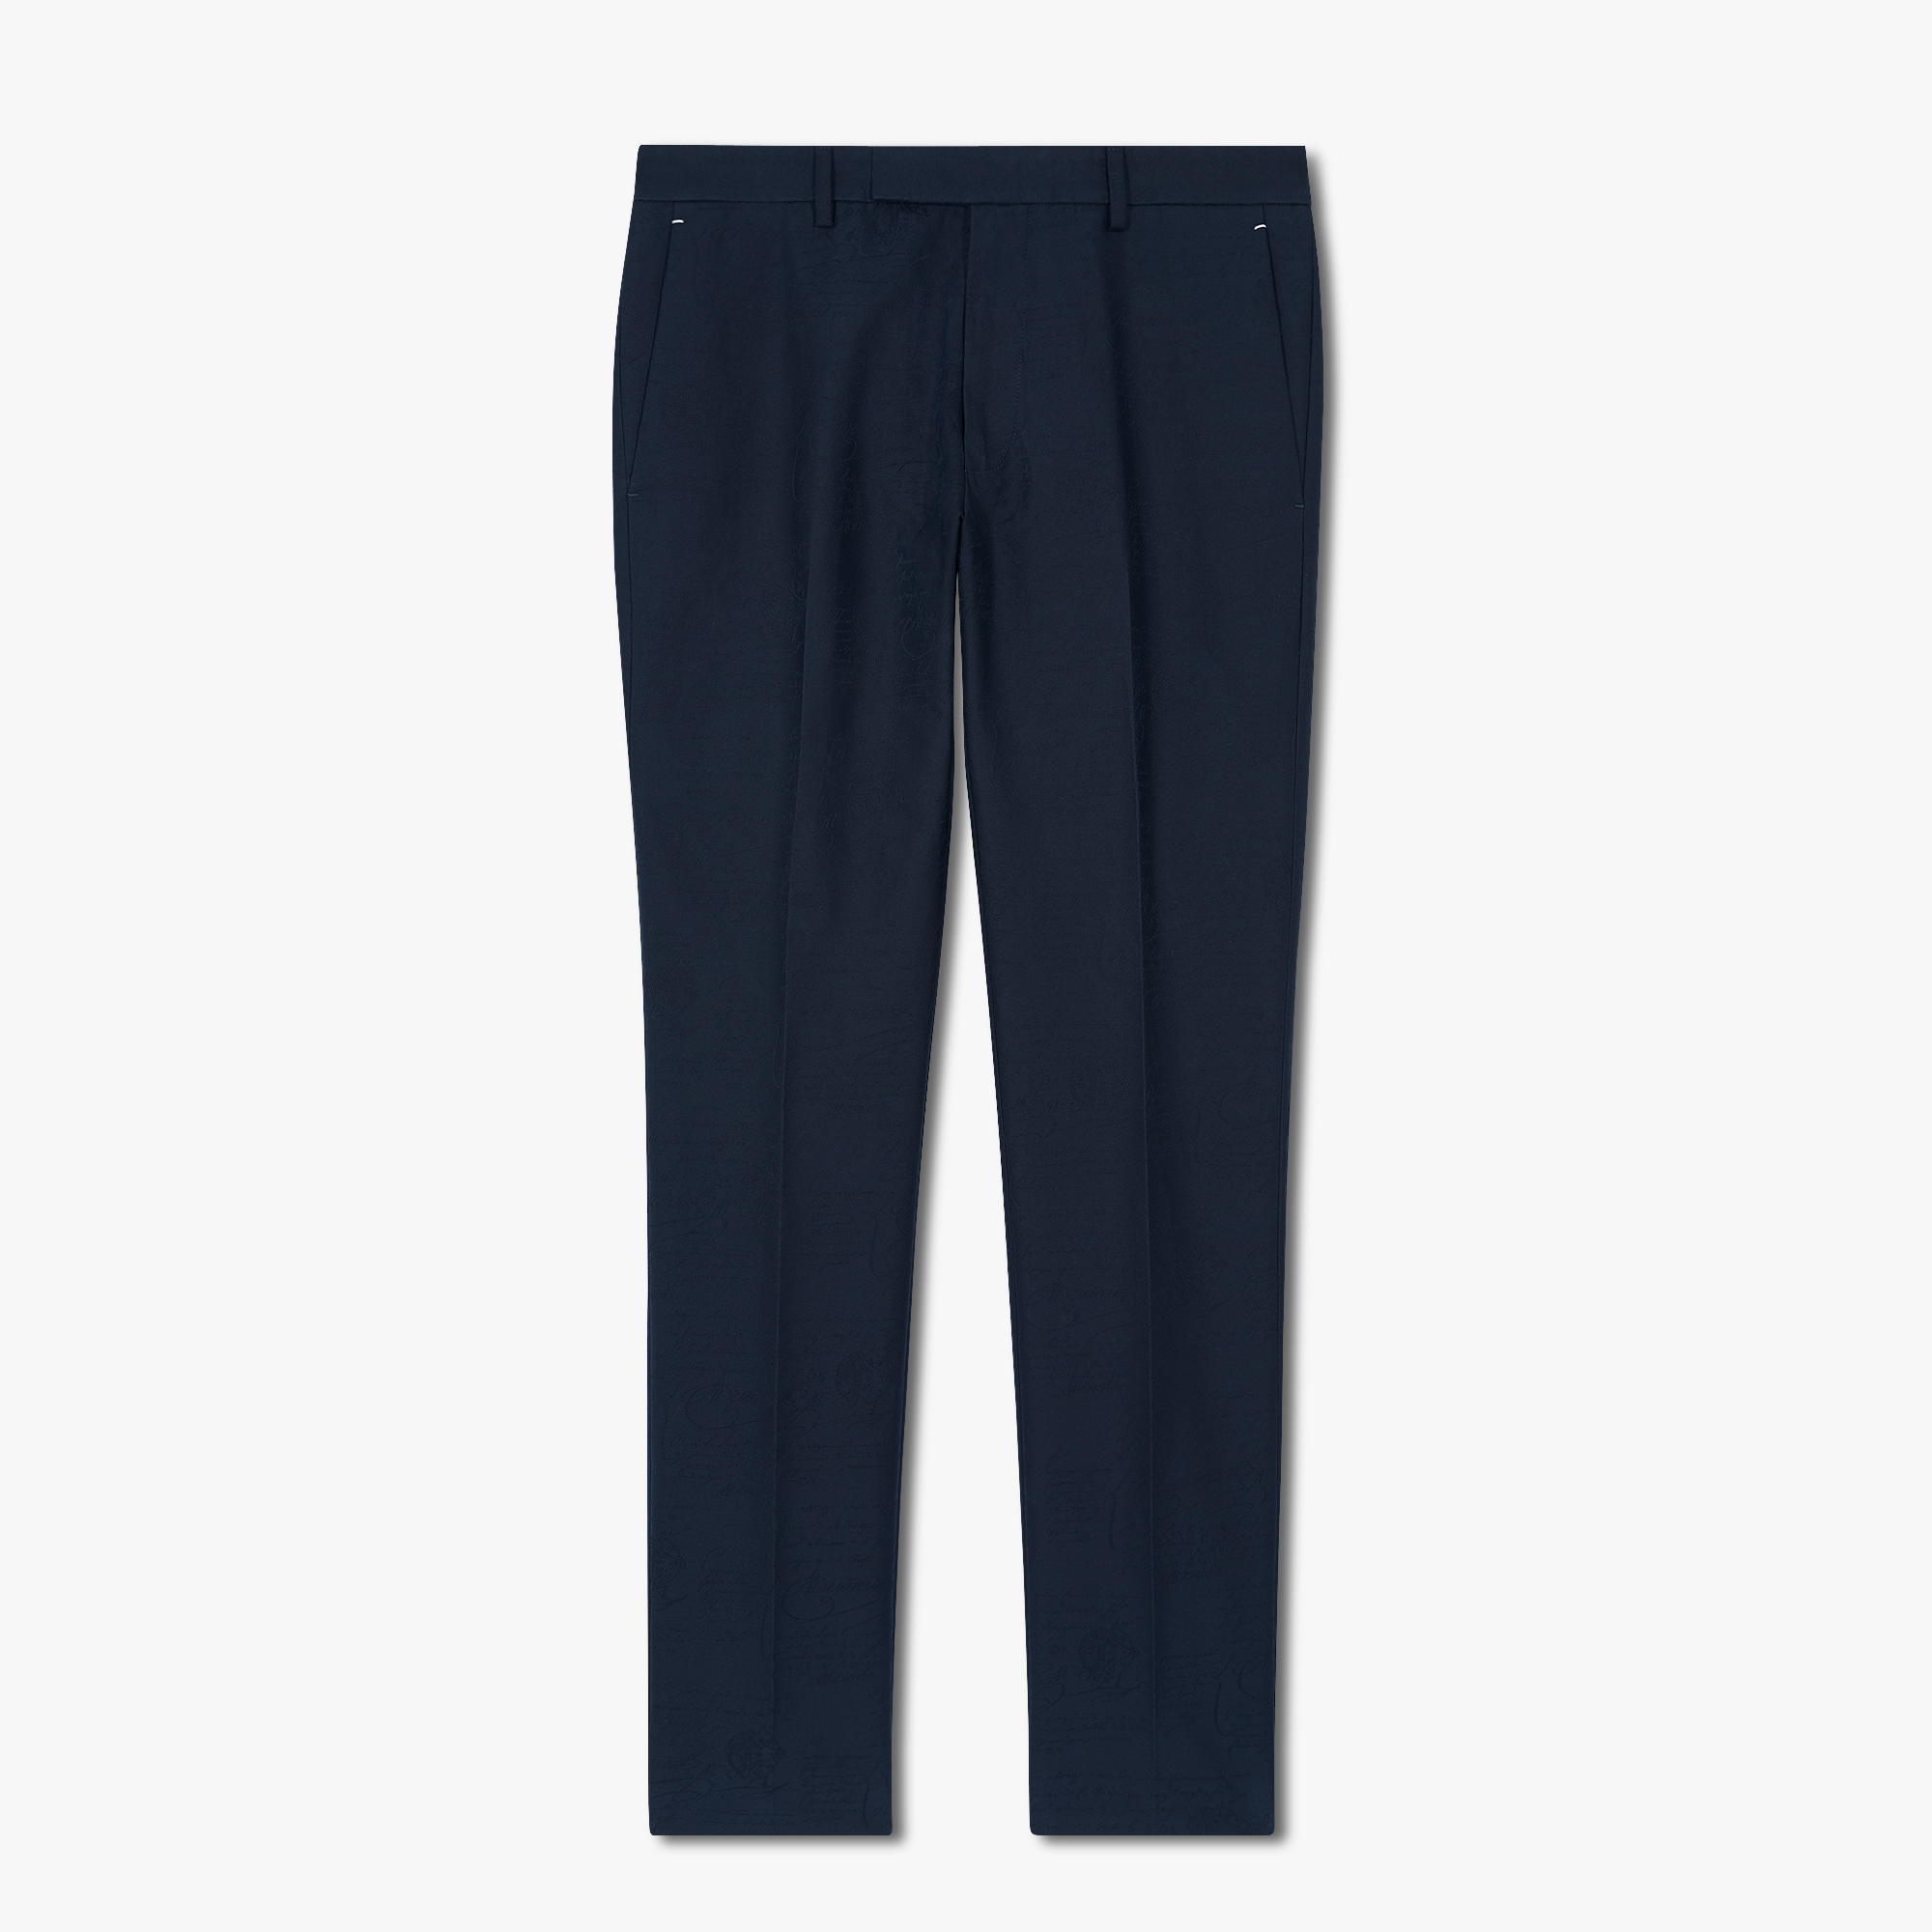 Scritto Chino Trousers, COLD NIGHT BLUE, hi-res